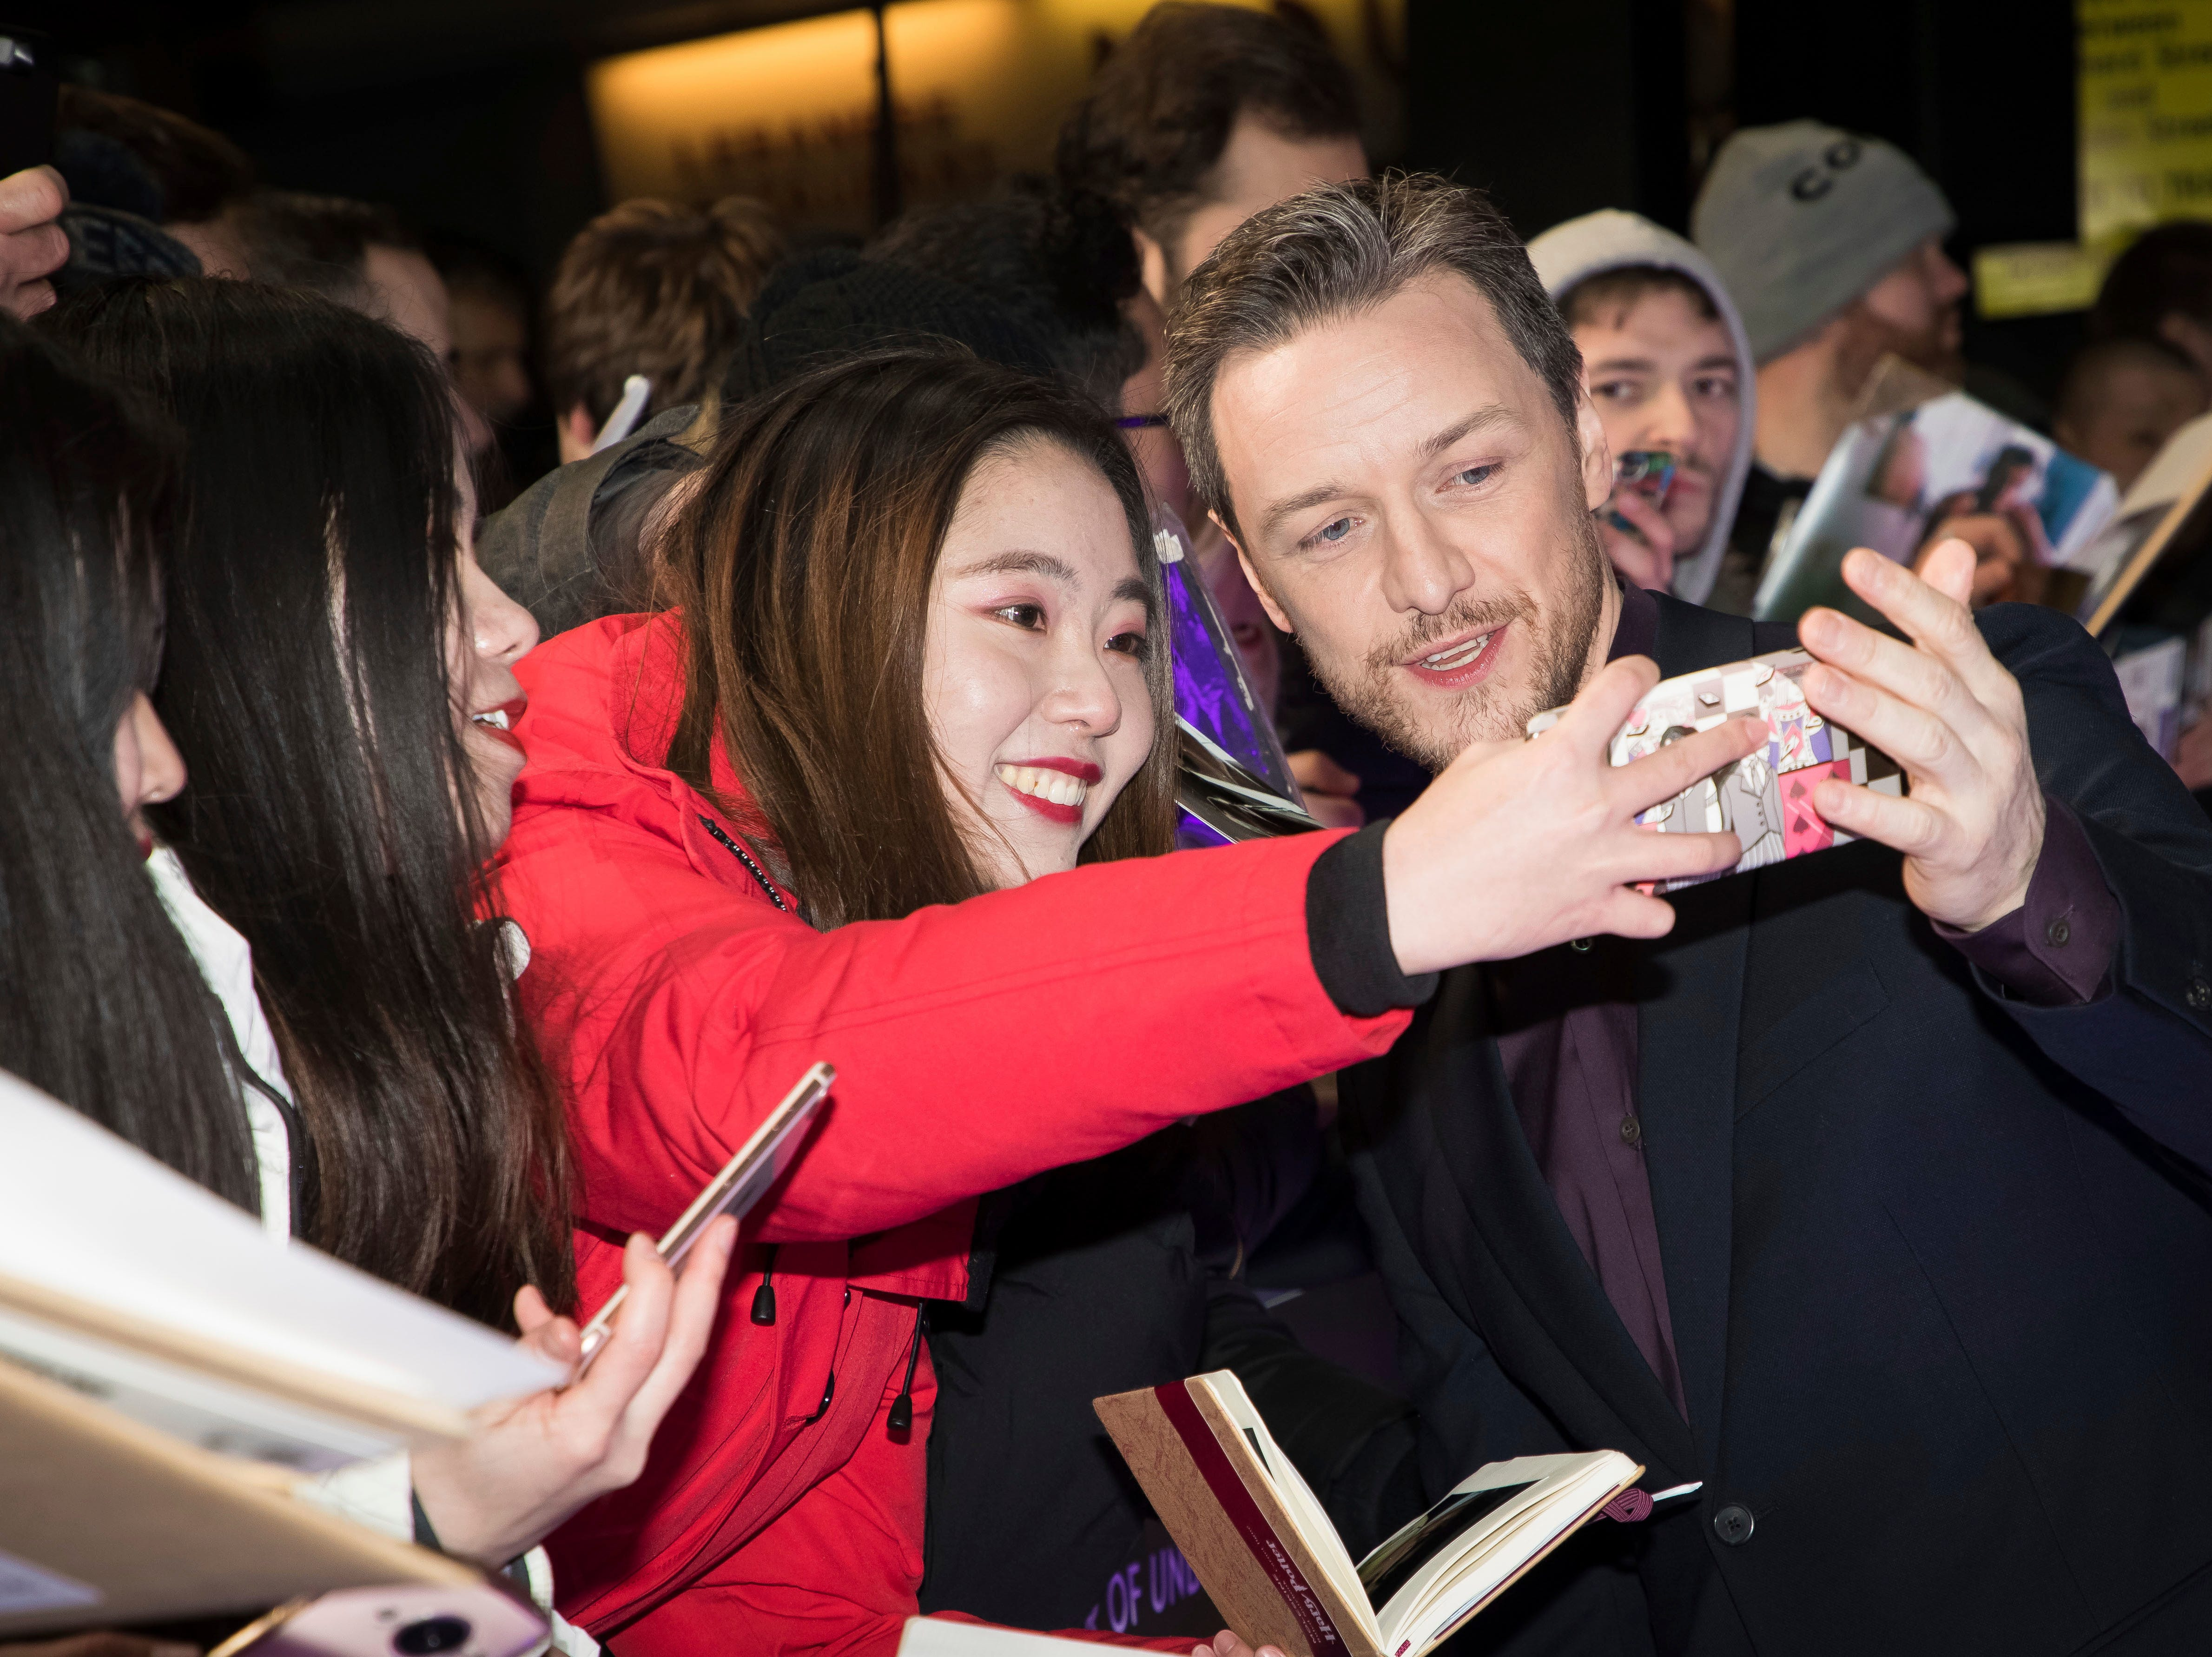 """Actor James McAvoy poses for photographs with fans upon arrival at the premiere of the film """"Glass"""" in London on Wednesday, Jan. 9, 2019."""